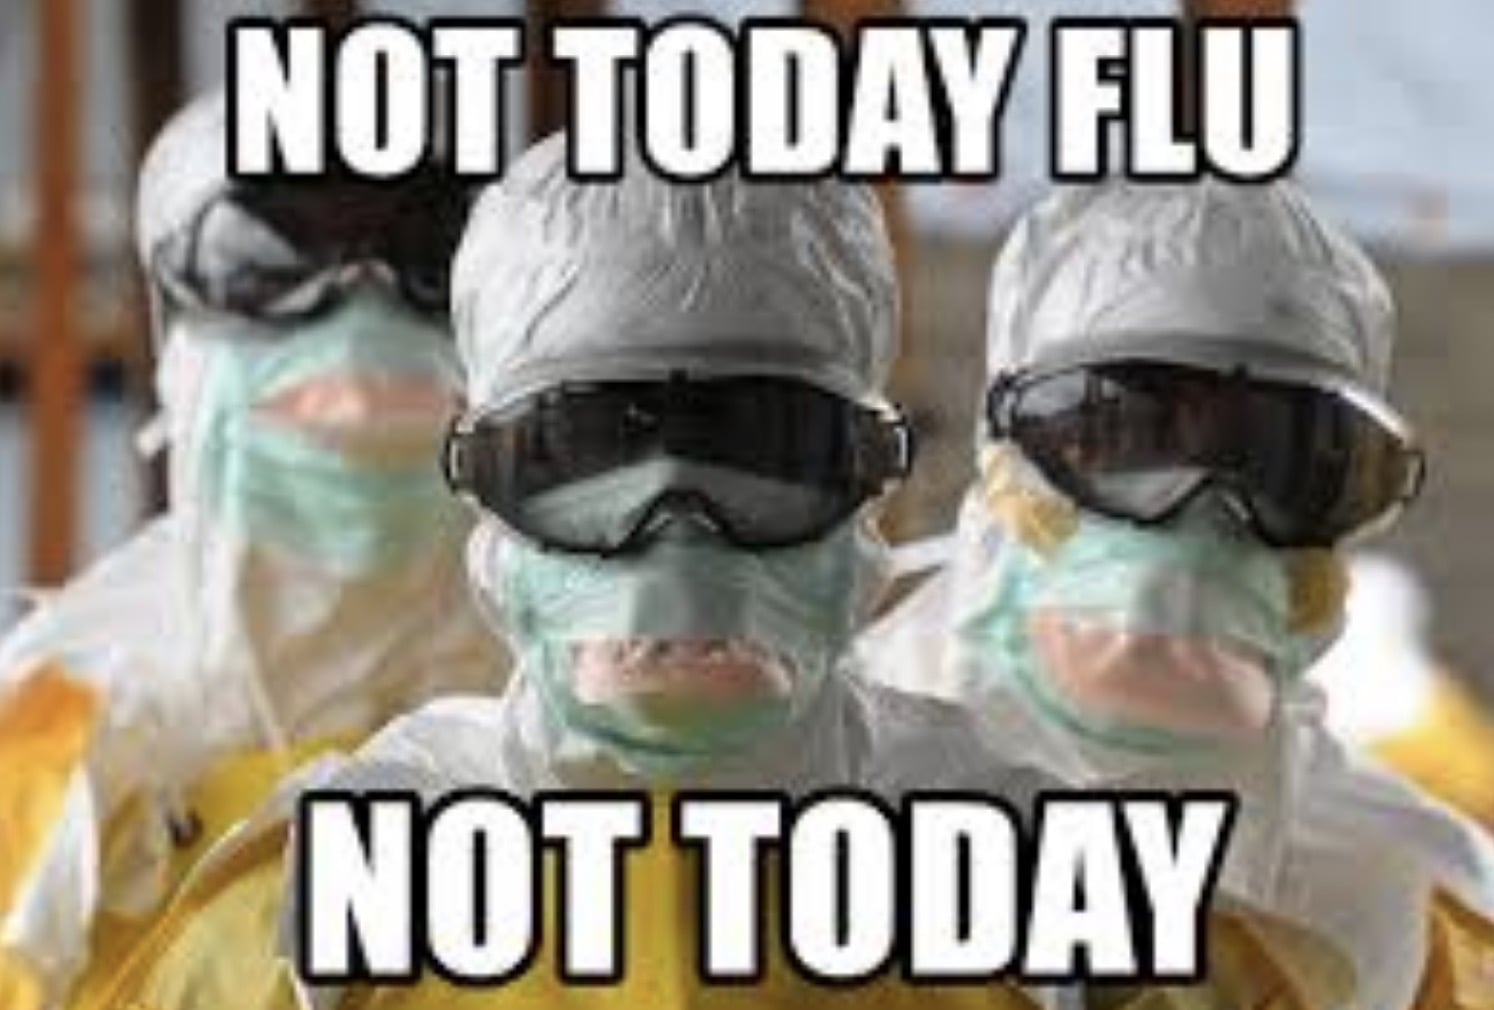 not today flu! hazmat suit for flu